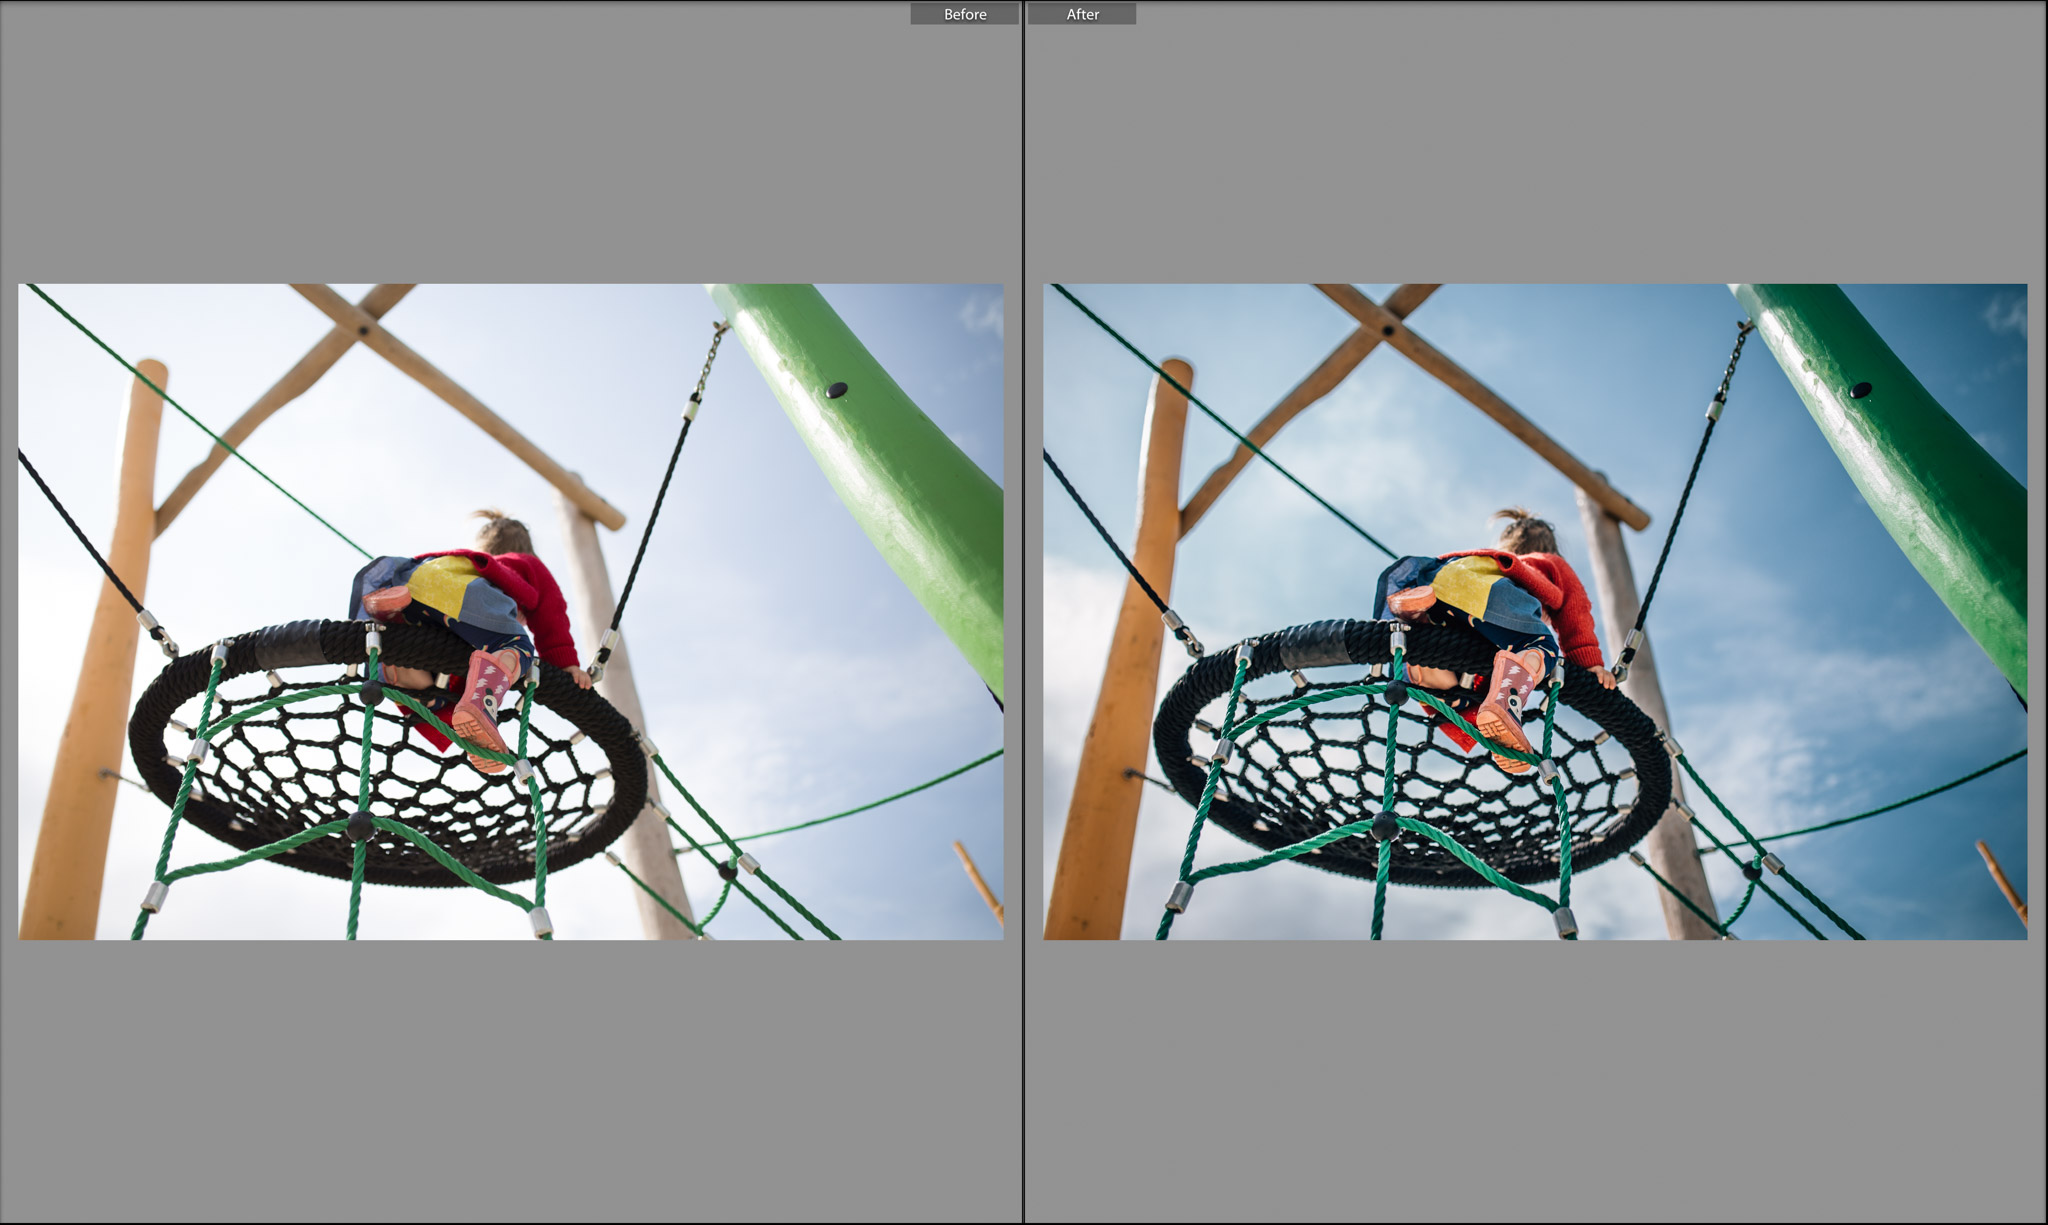 before and after girl on climbing play equipment.jpg